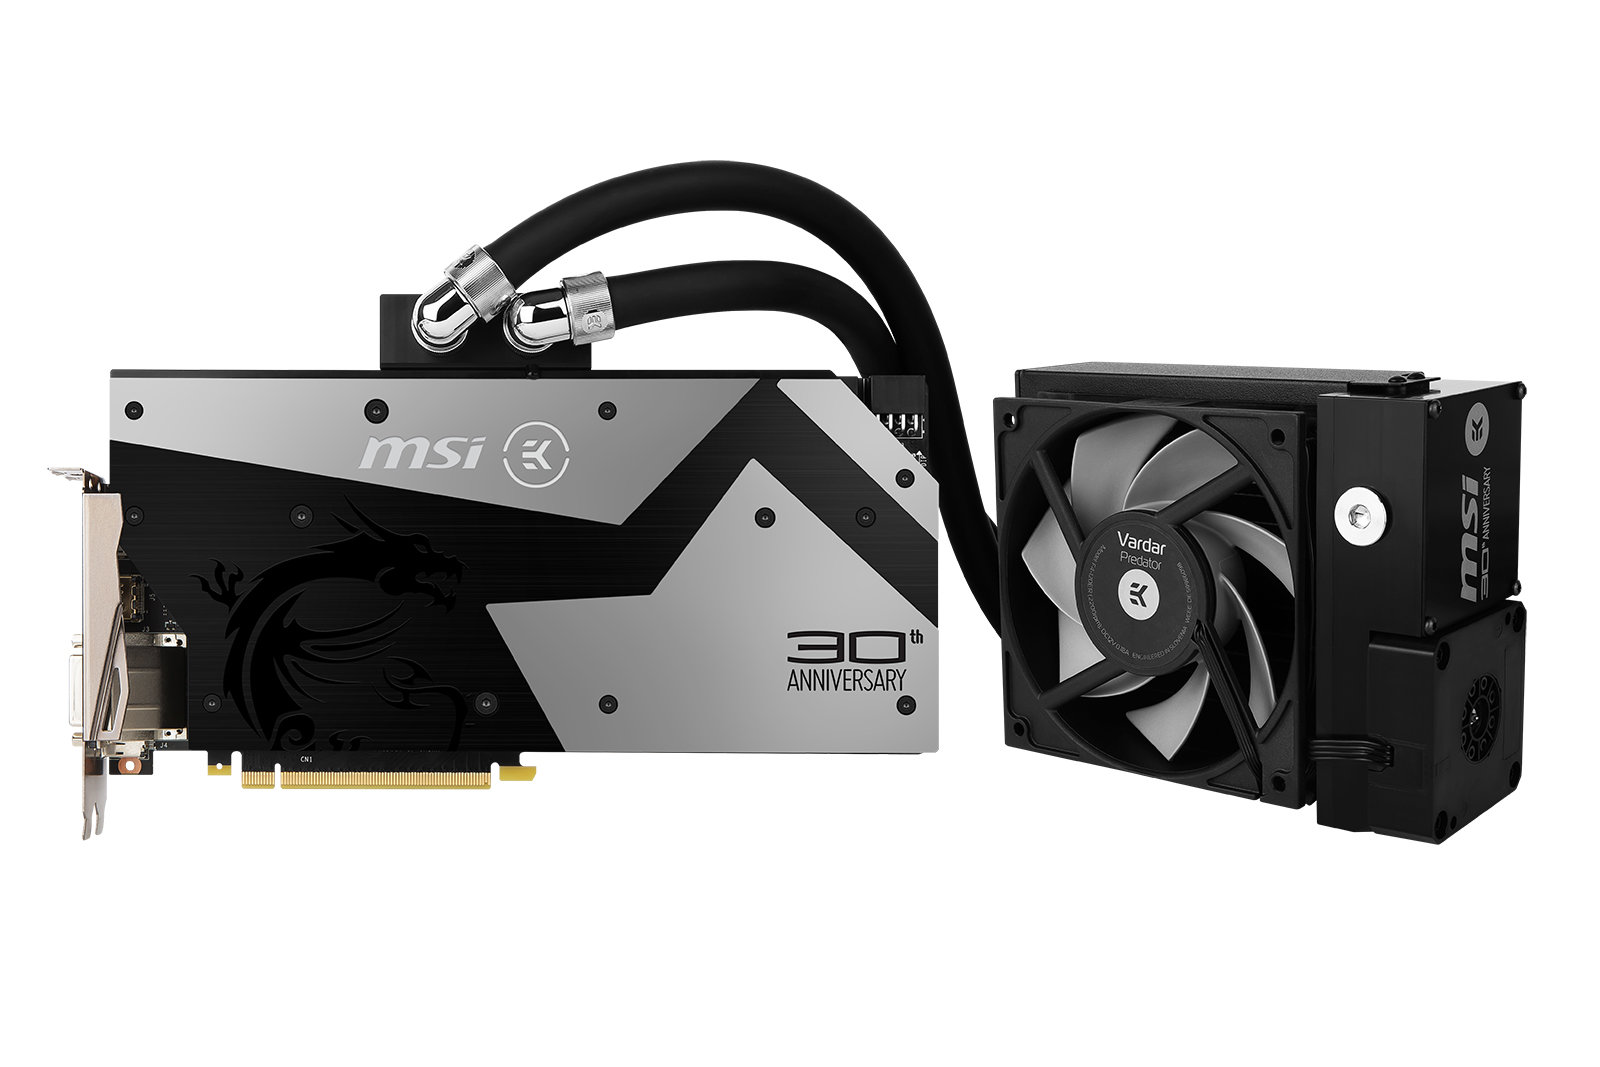 GeForce GTX 1080 30th Anniversary